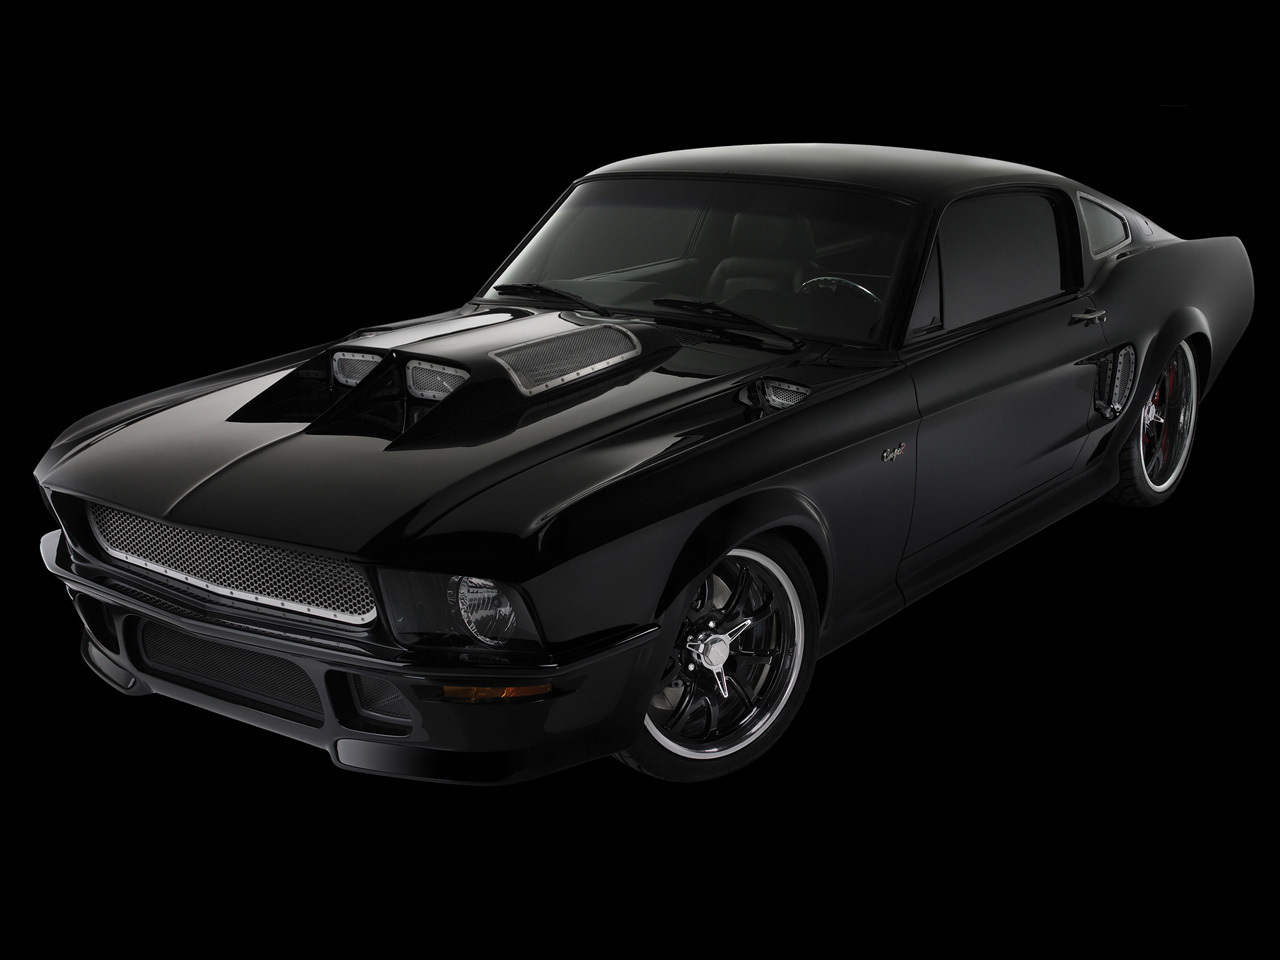 HD Wallpapers Collection american muscle cars wallpaper 1280x960